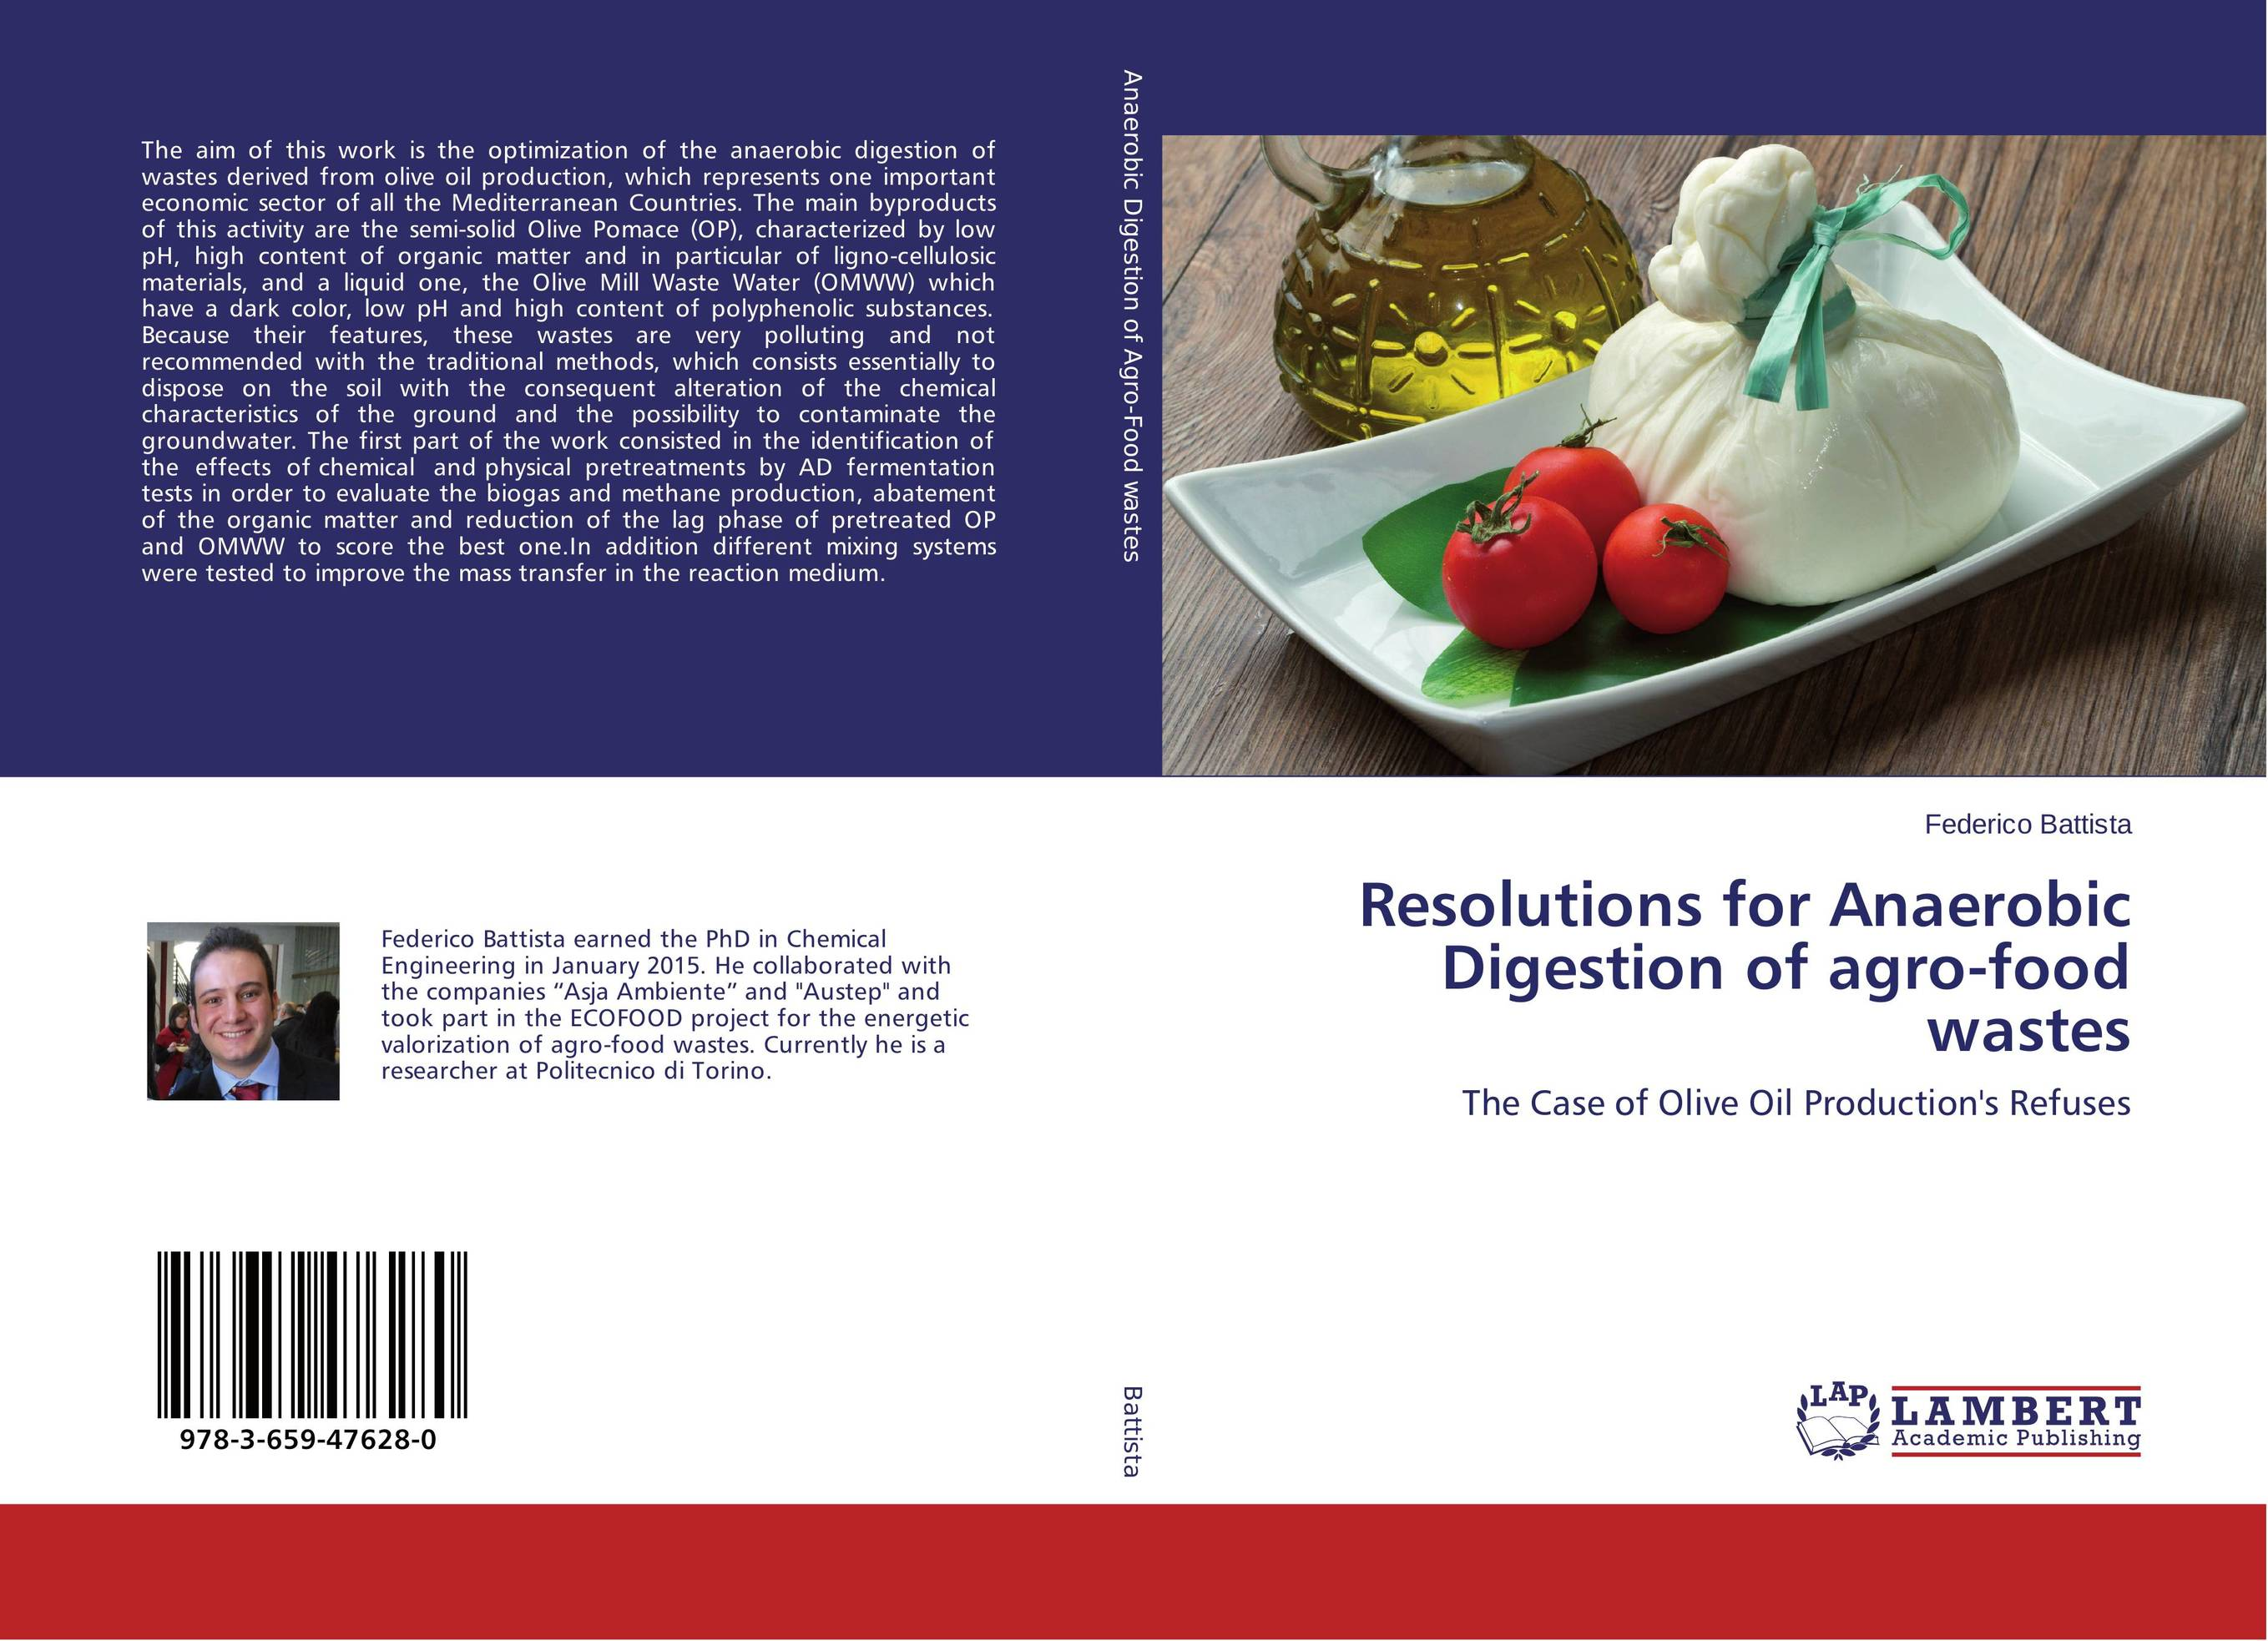 Resolutions for Anaerobic Digestion of agro-food wastes mann dido anaerobic fermentation of spent grains